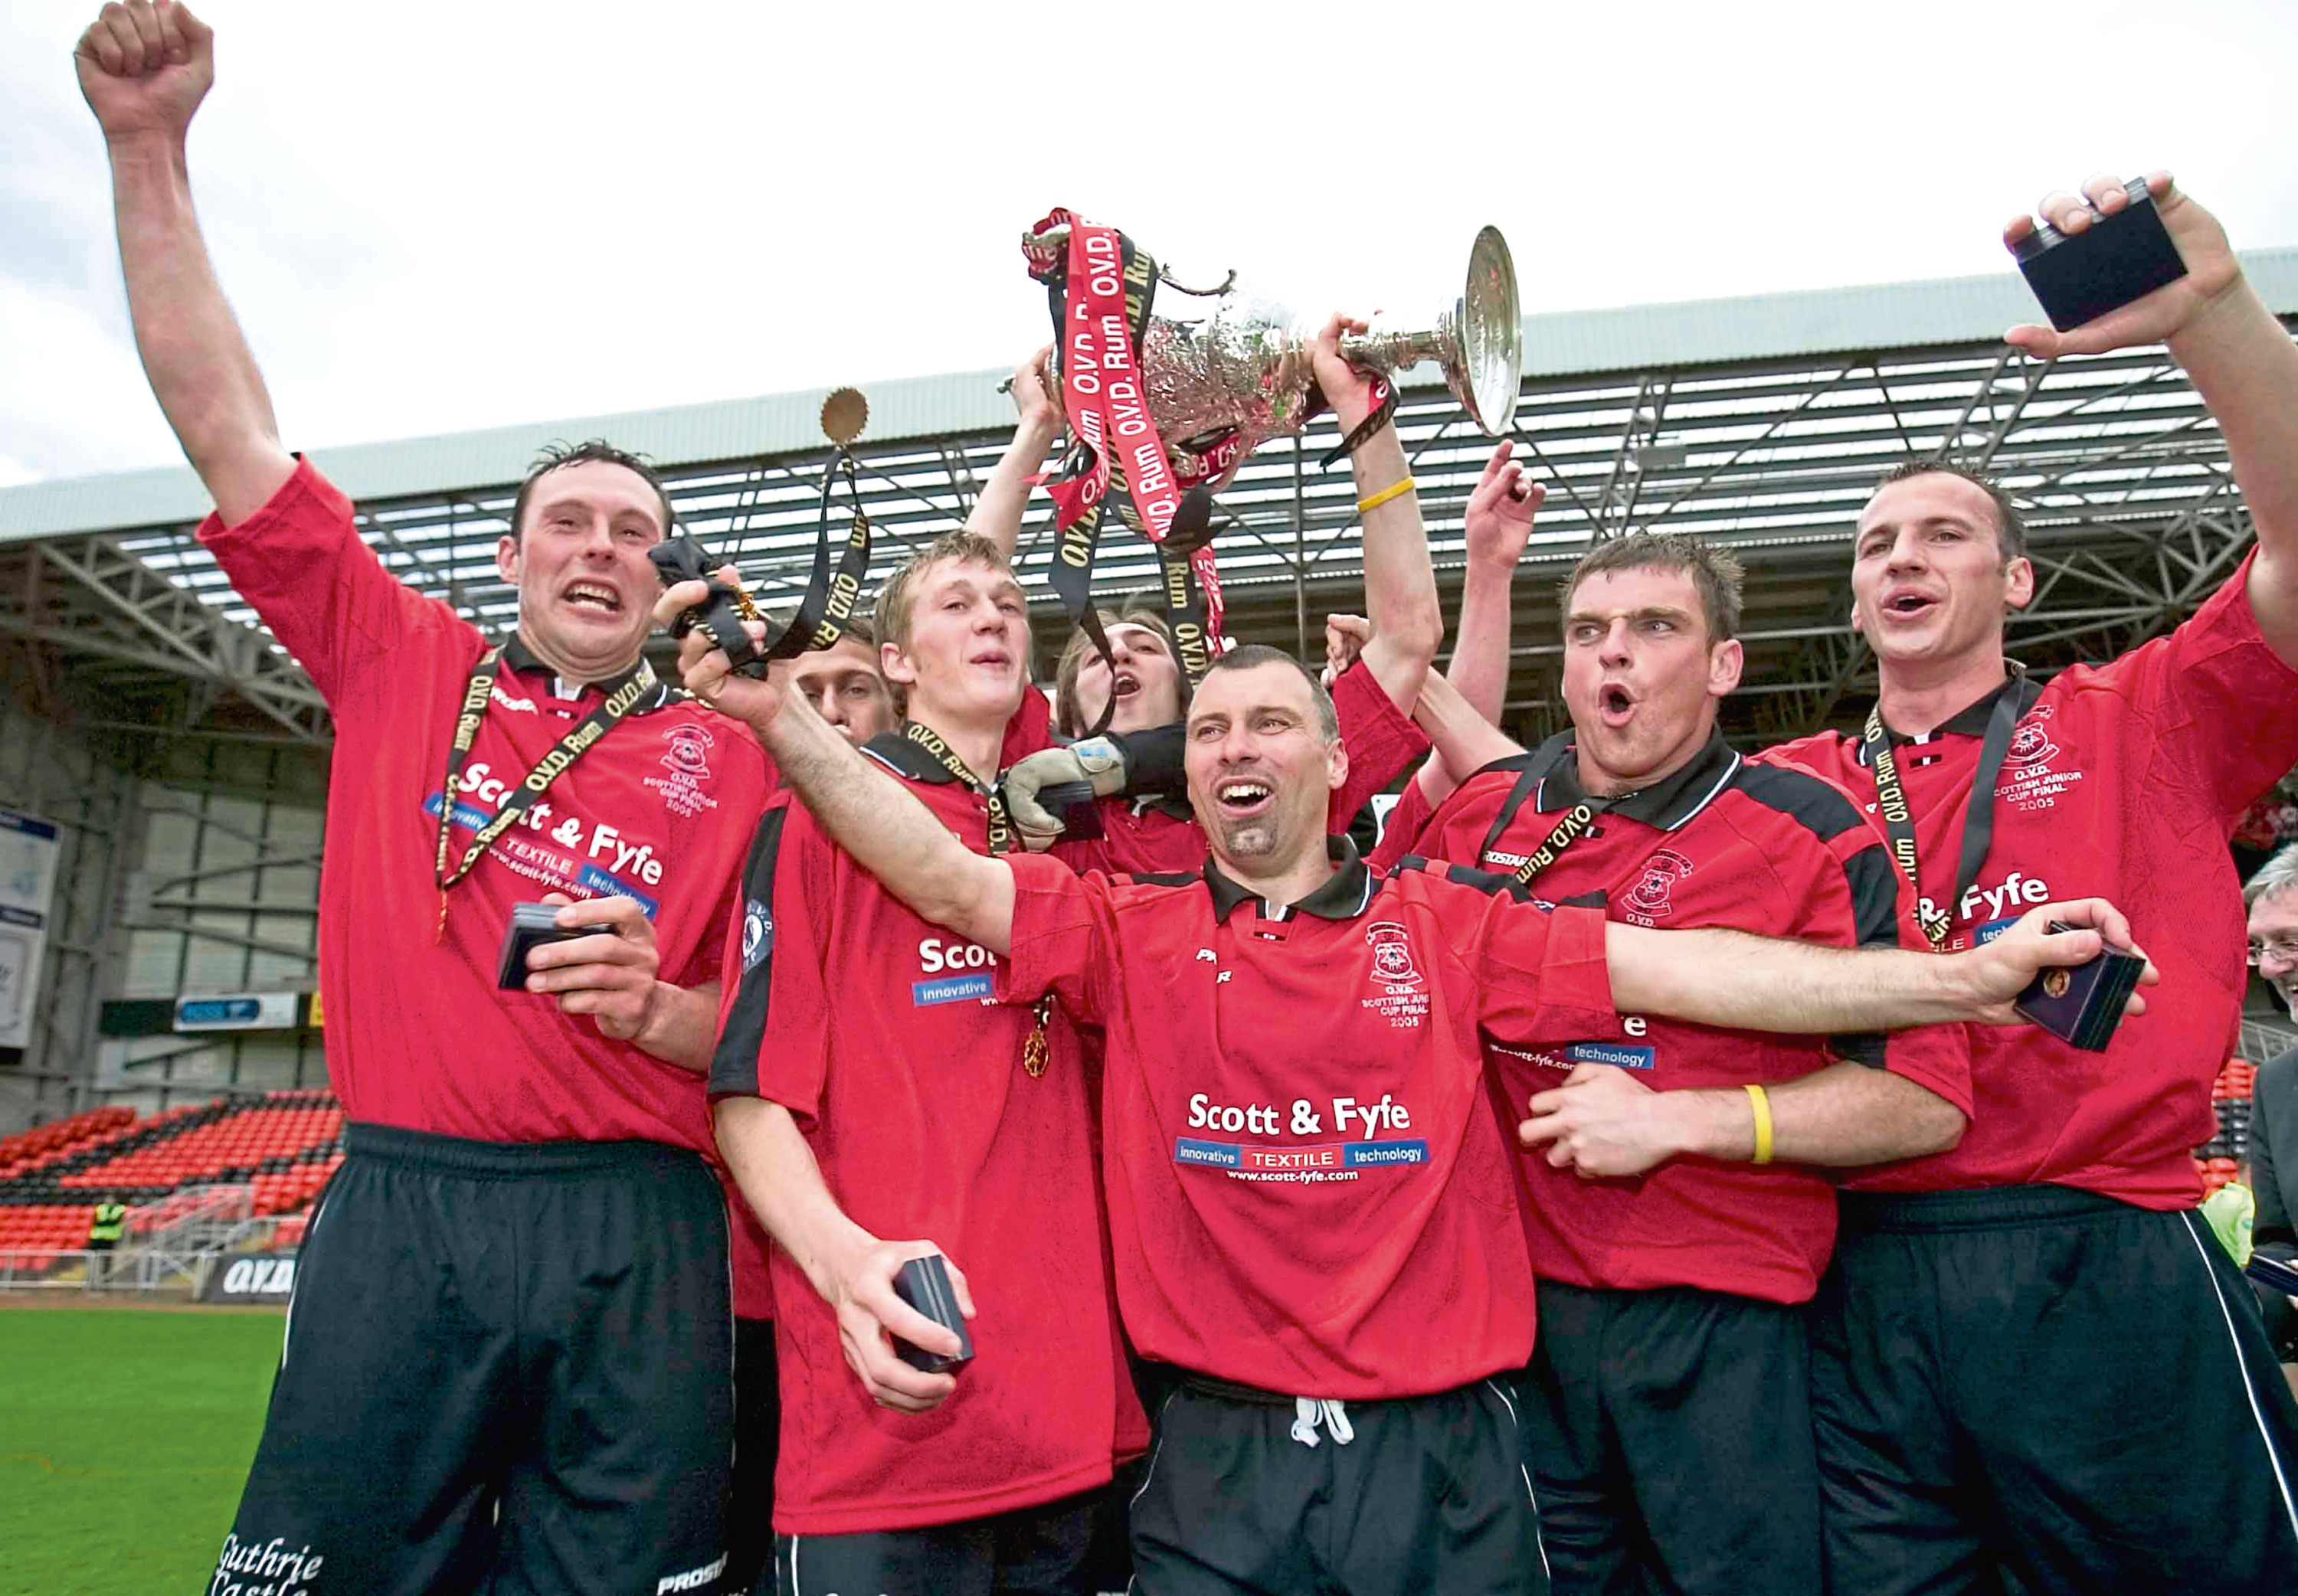 Tayport players celebrating their 2005 Scottish Junior Cup Final win over Lochee United at Tannadice